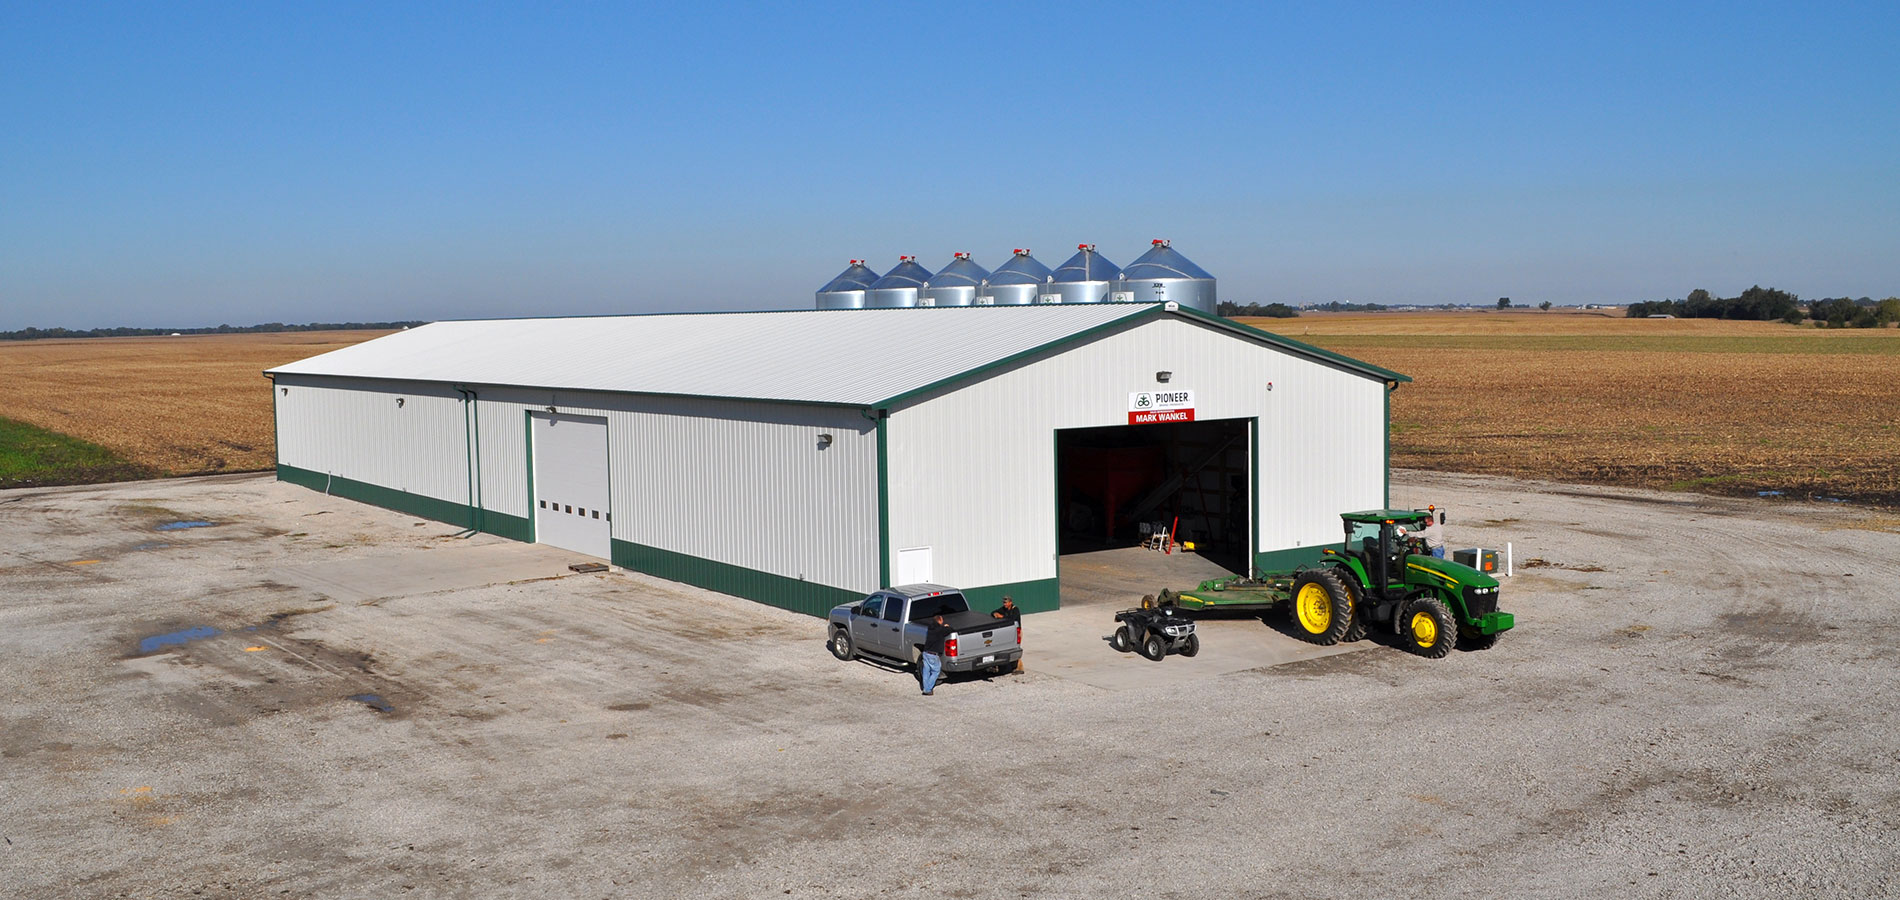 Agriculture Buildings, Pole Barns, Sheds, Workshops Machine Sheds, Cattle Barns and more.